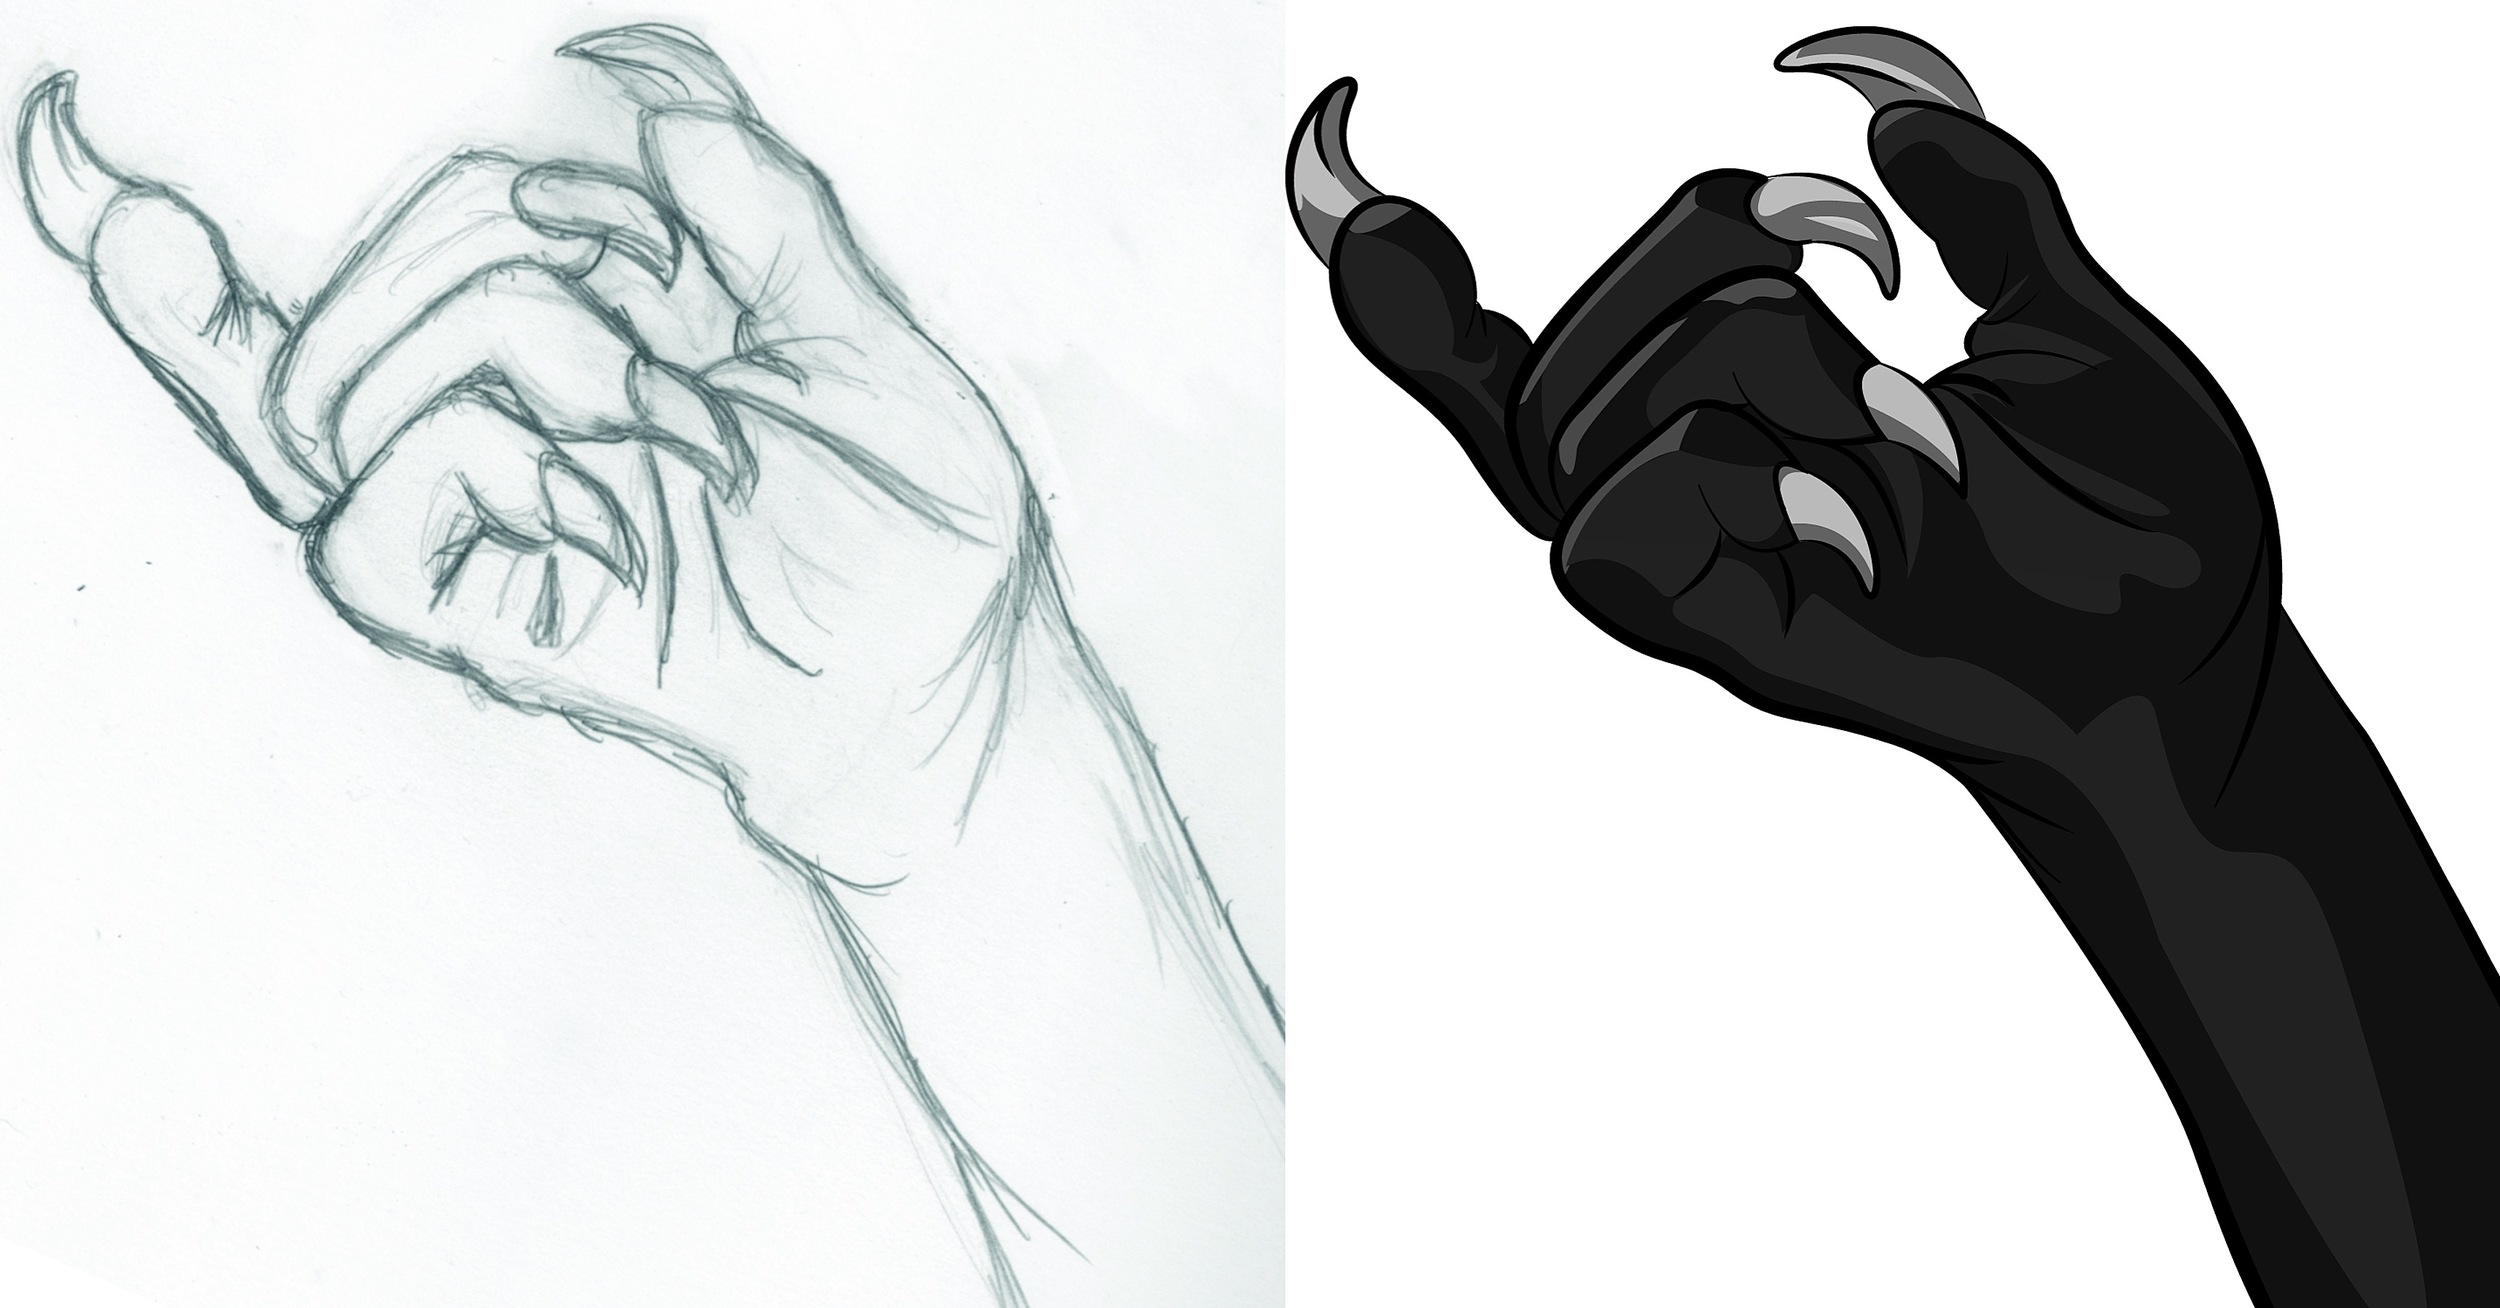 Catwoman Claws Glove Hand Sketch and Digital